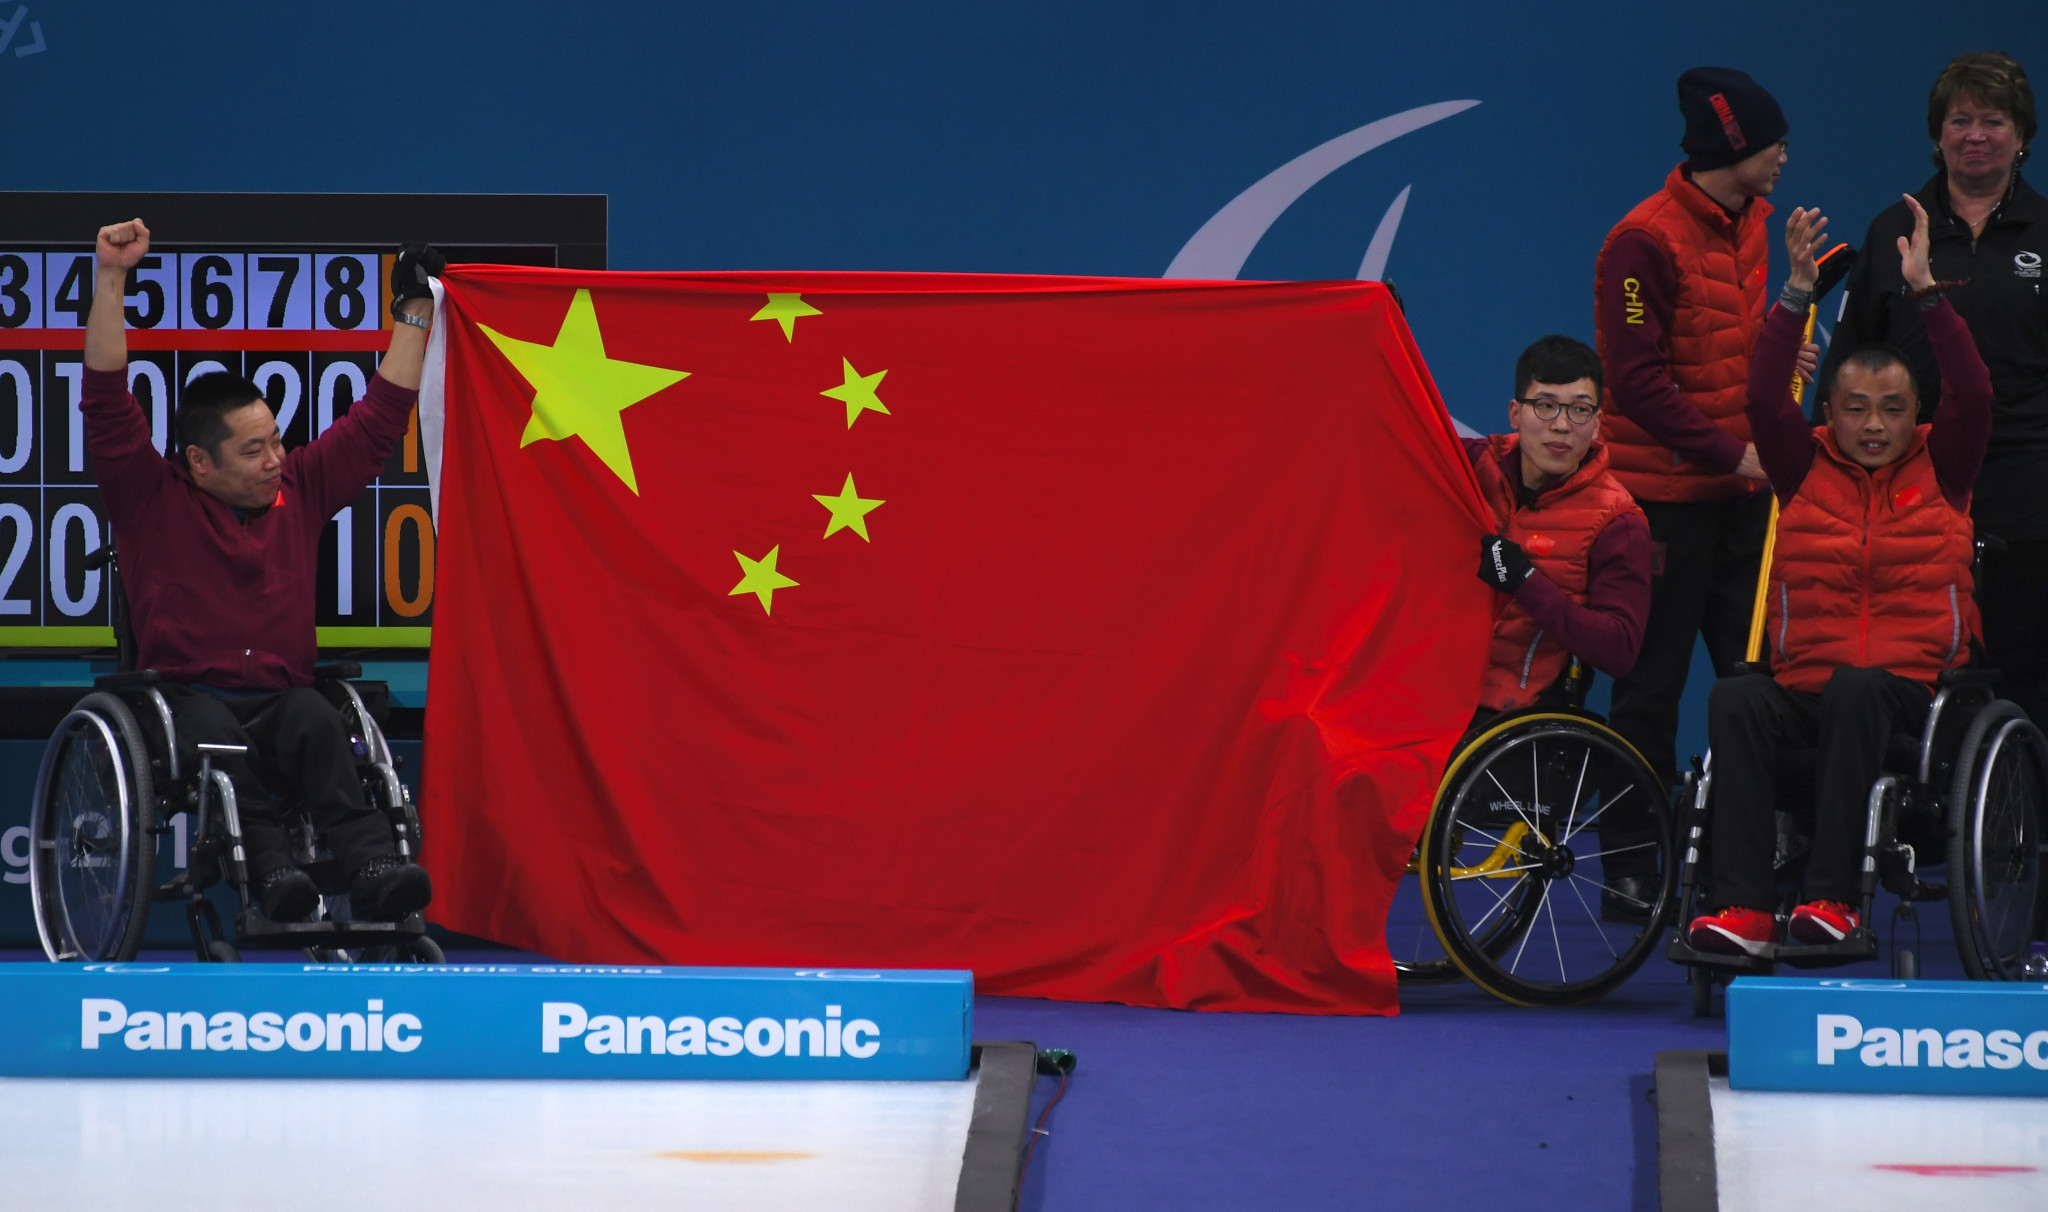 China's wheelchair curling team celebrate their gold at Pyeongchang 2018 - the country's first ever medal at the Winter Paralympic Games having made their debut at Salt Lake City 2002 ©Getty Images